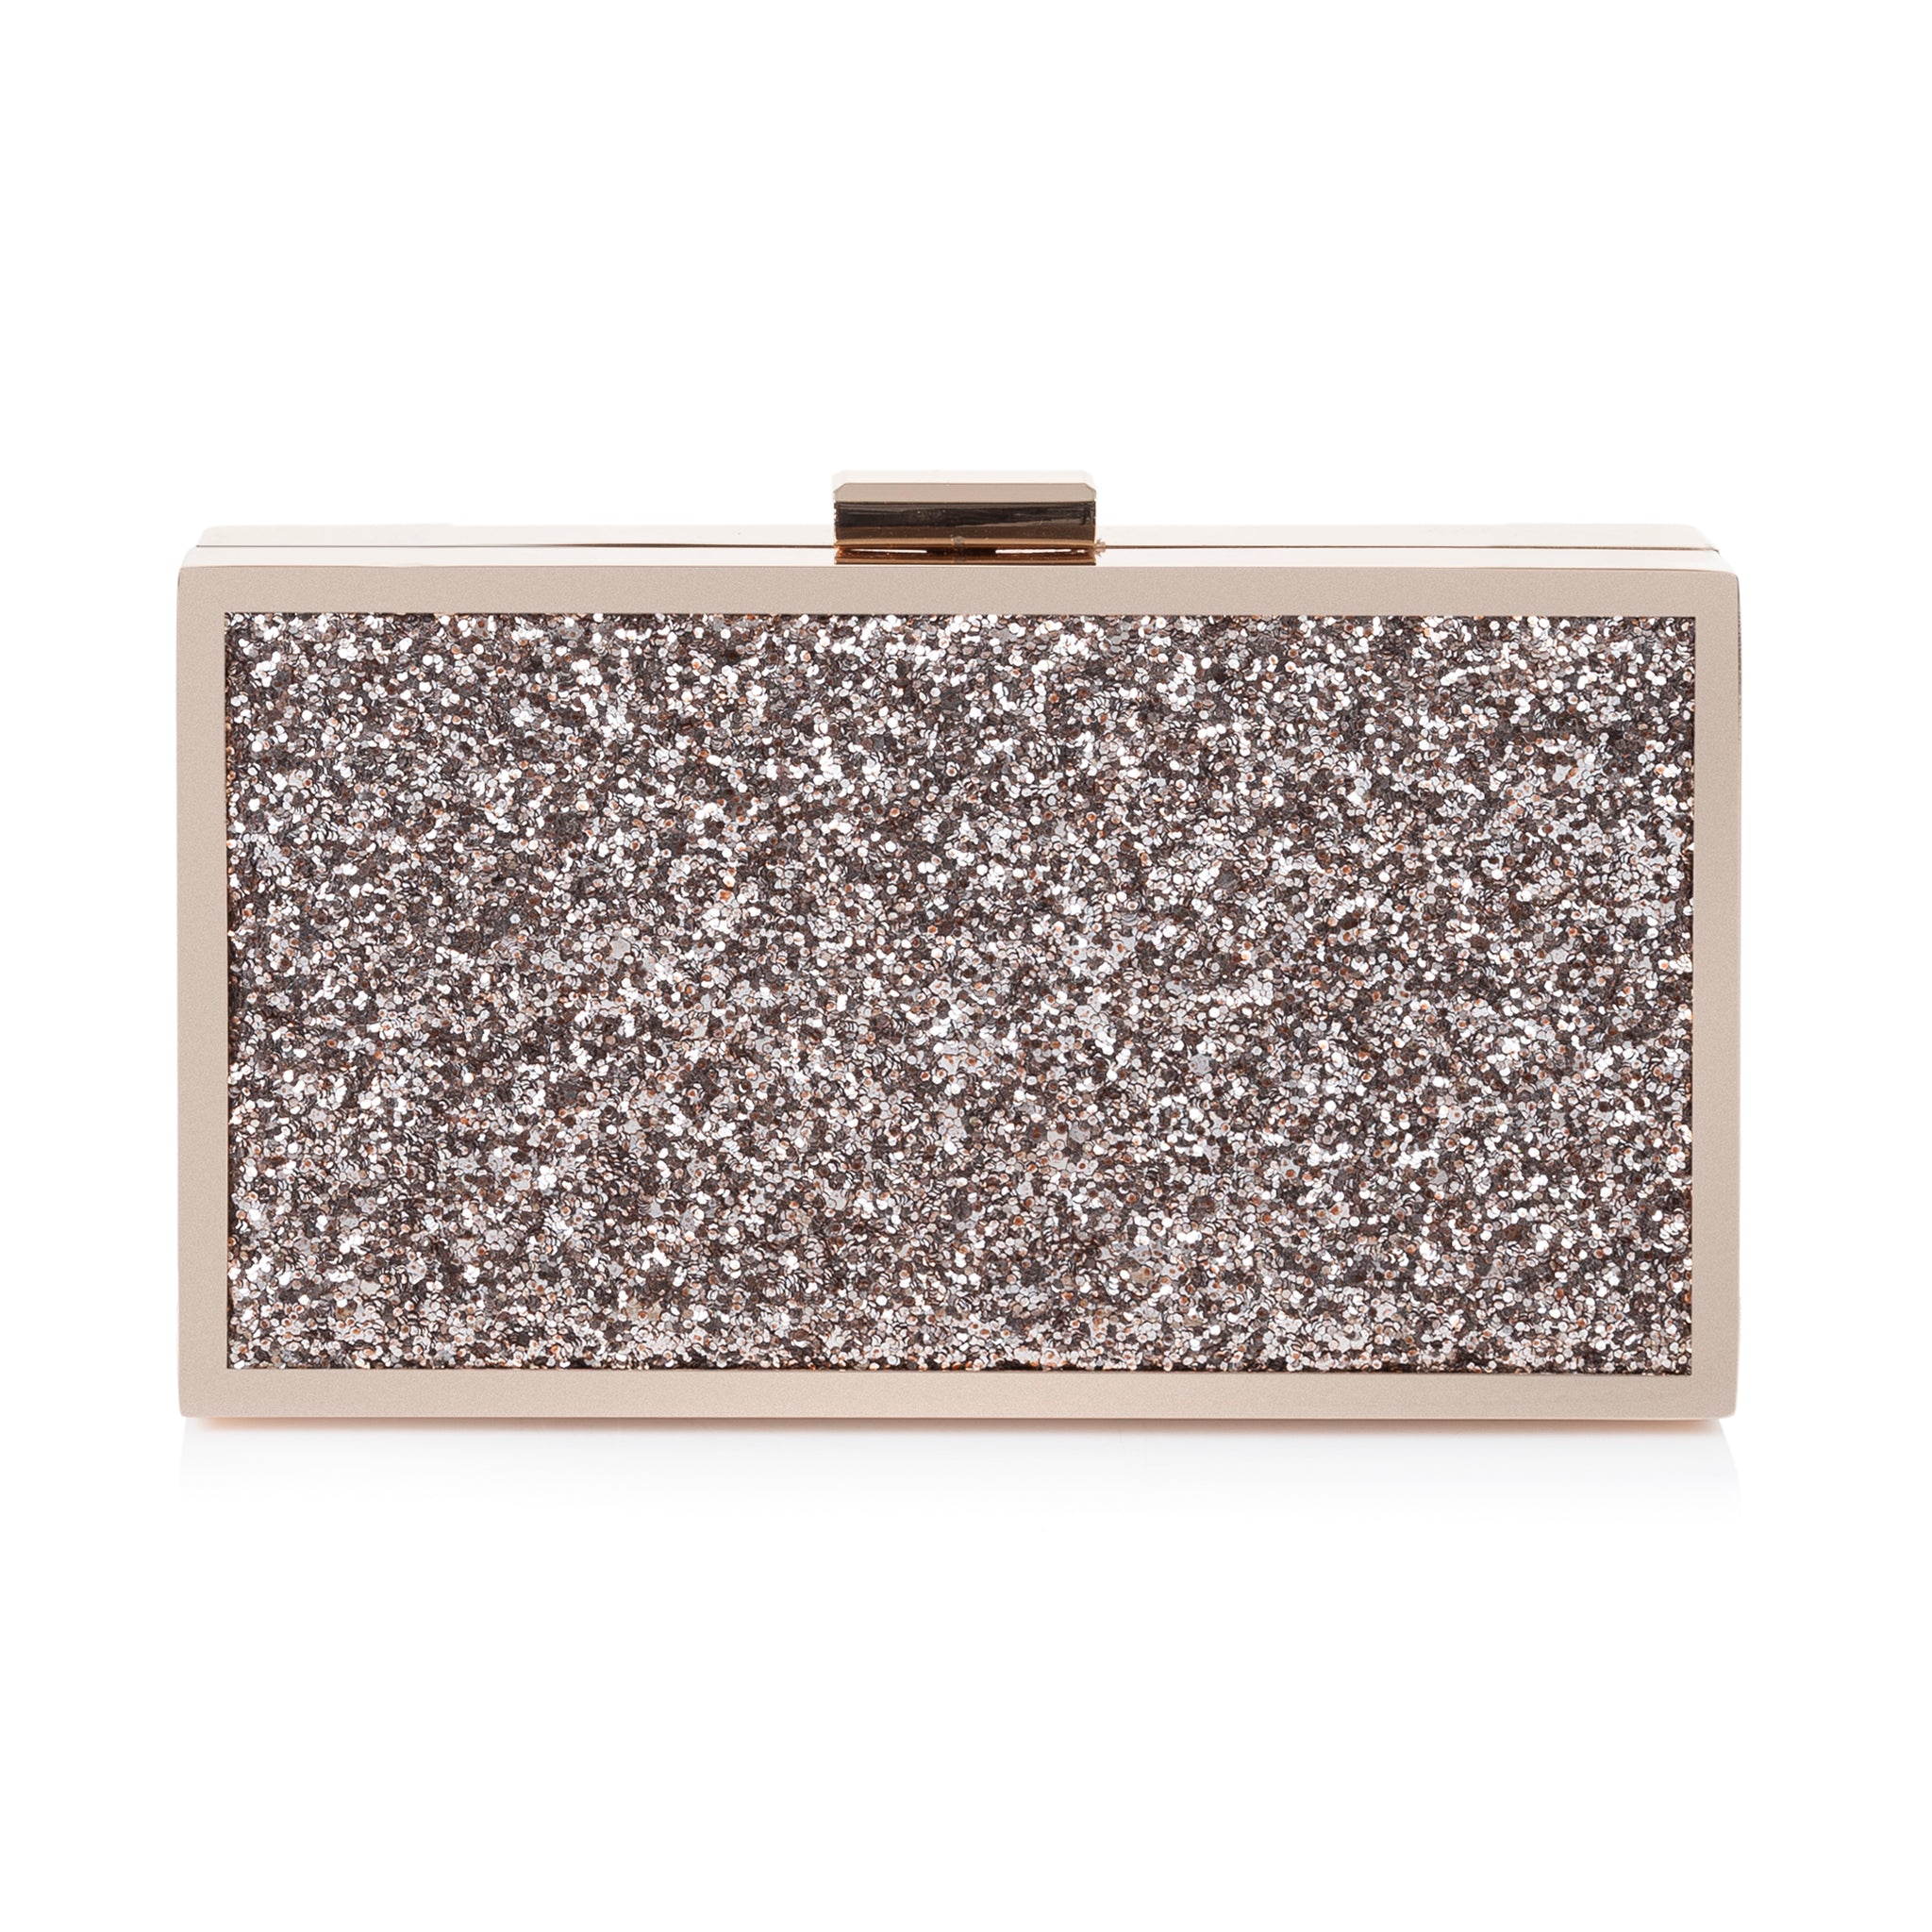 Rachel Simpson Rose Quartz Glitter Clutch Bag